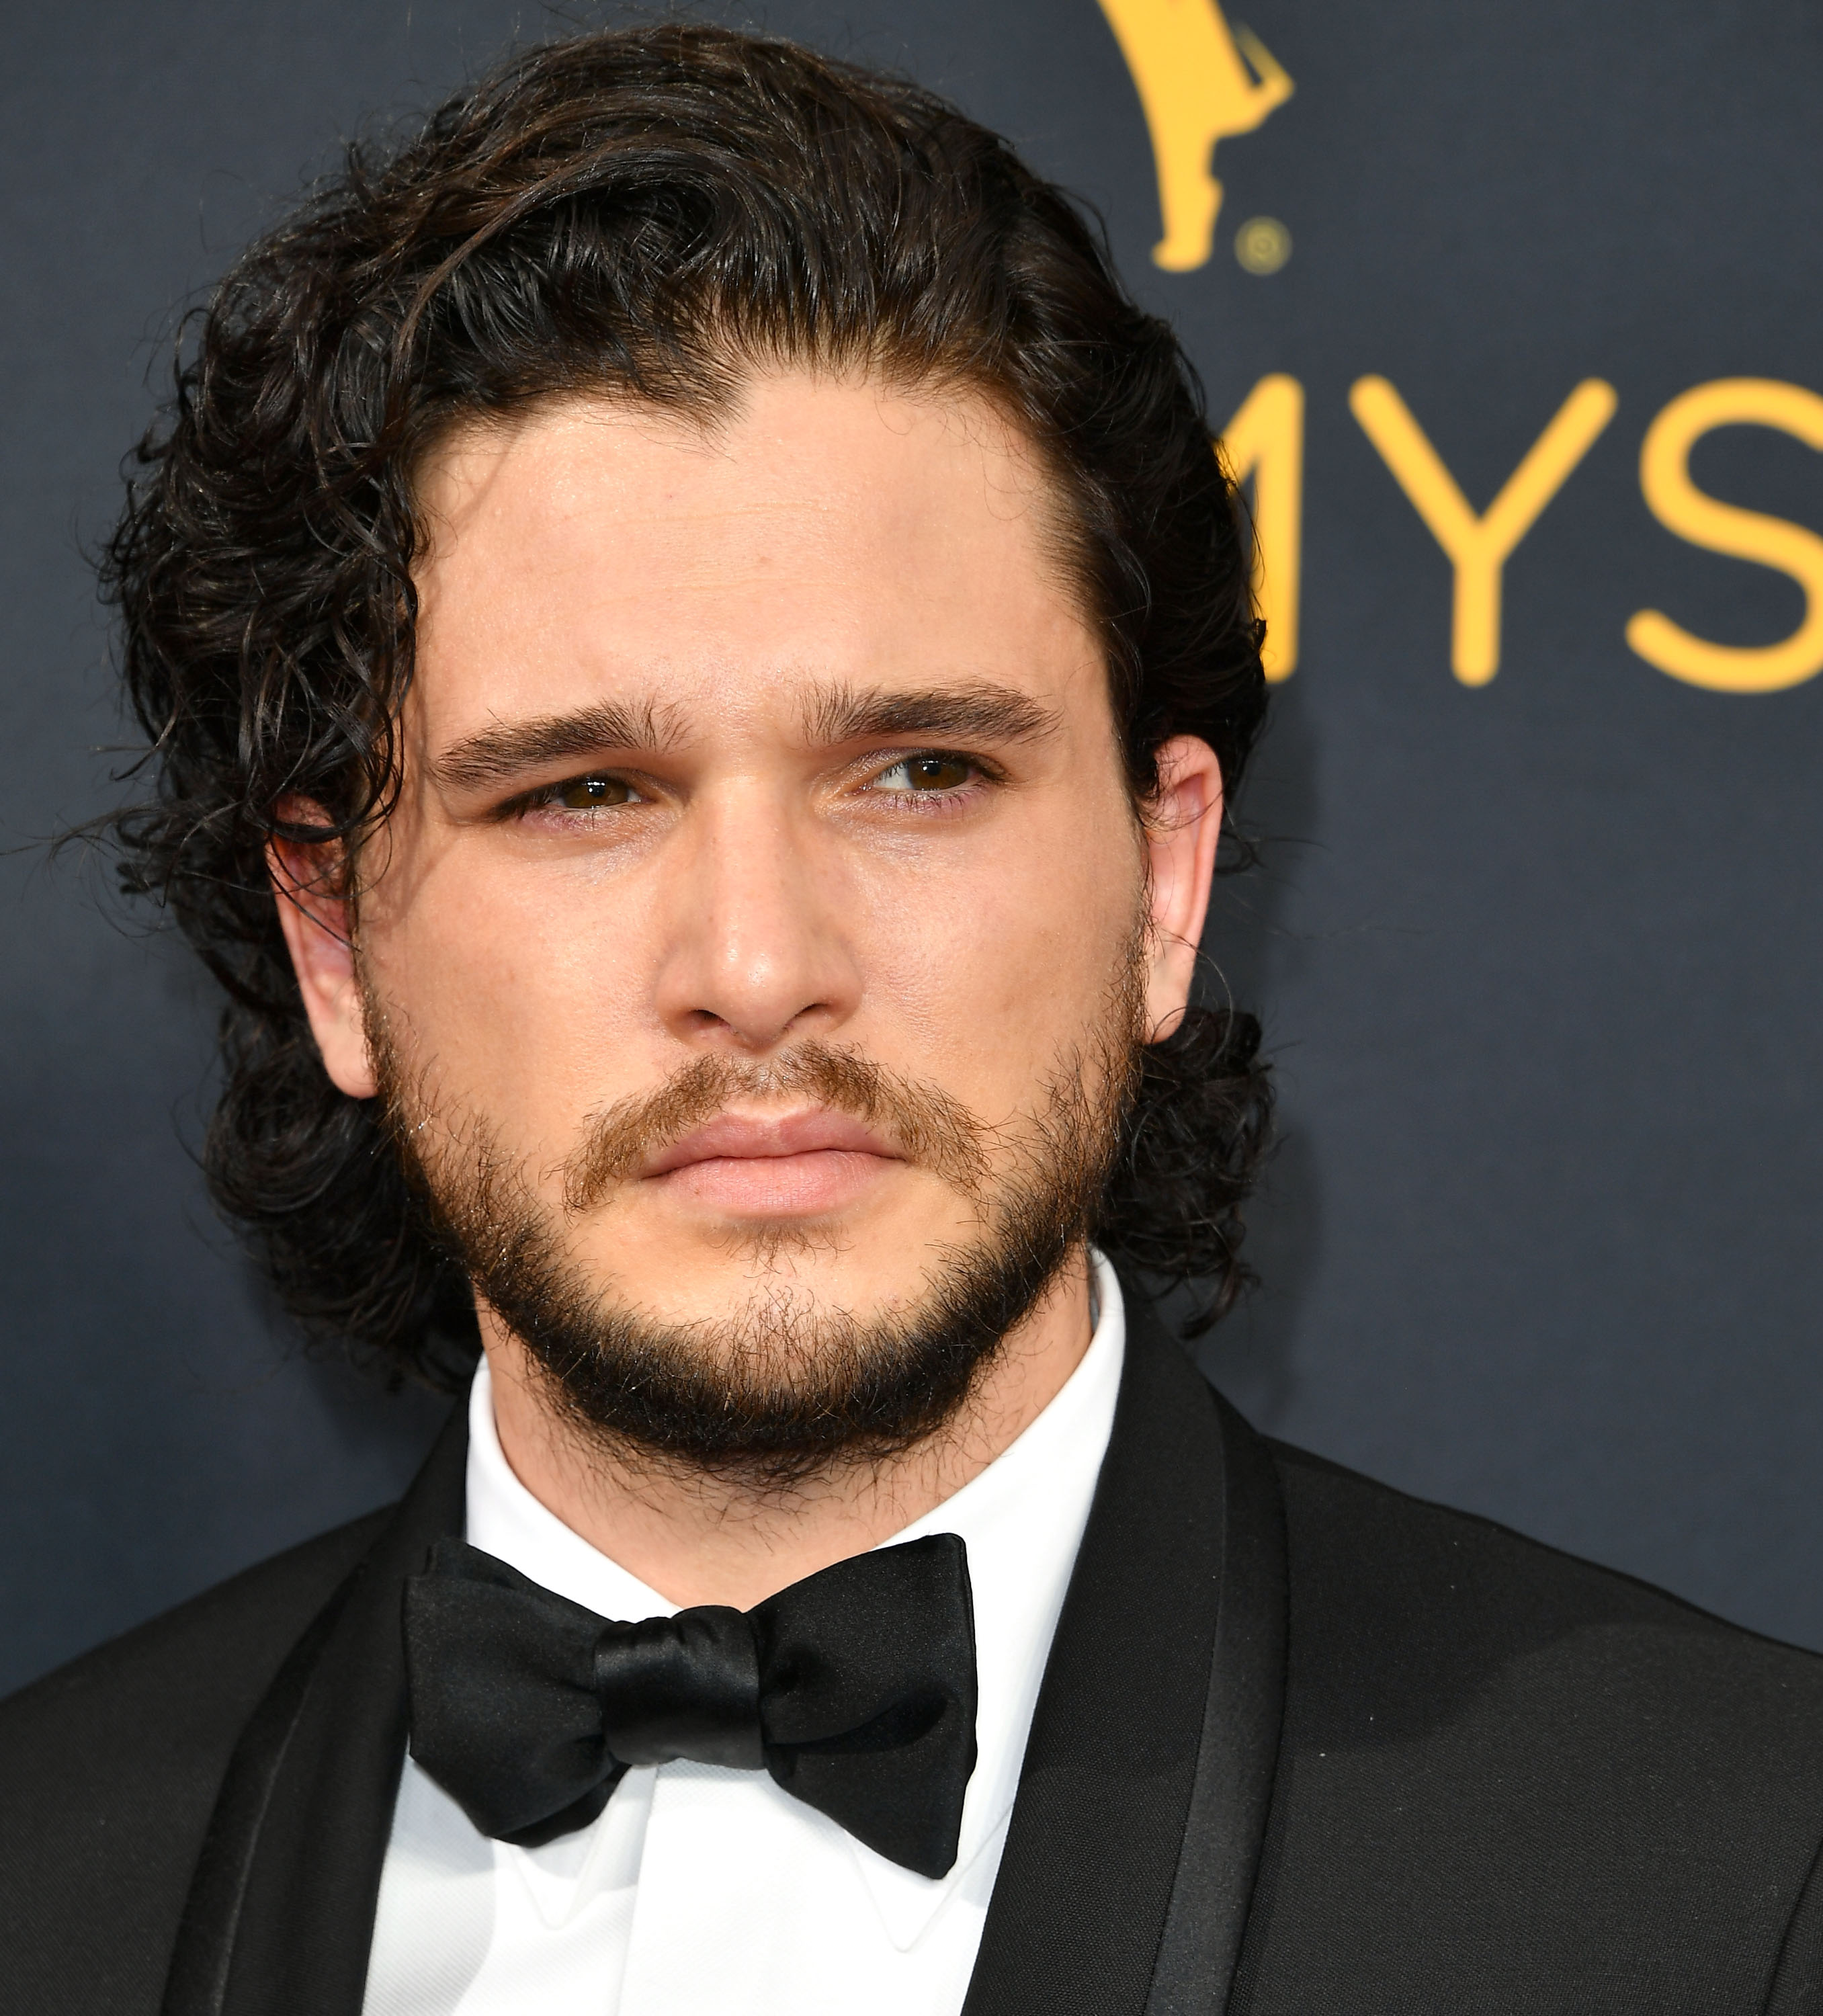 Kit Harington: Kit Harington Accused Of Cheating After Model Releases